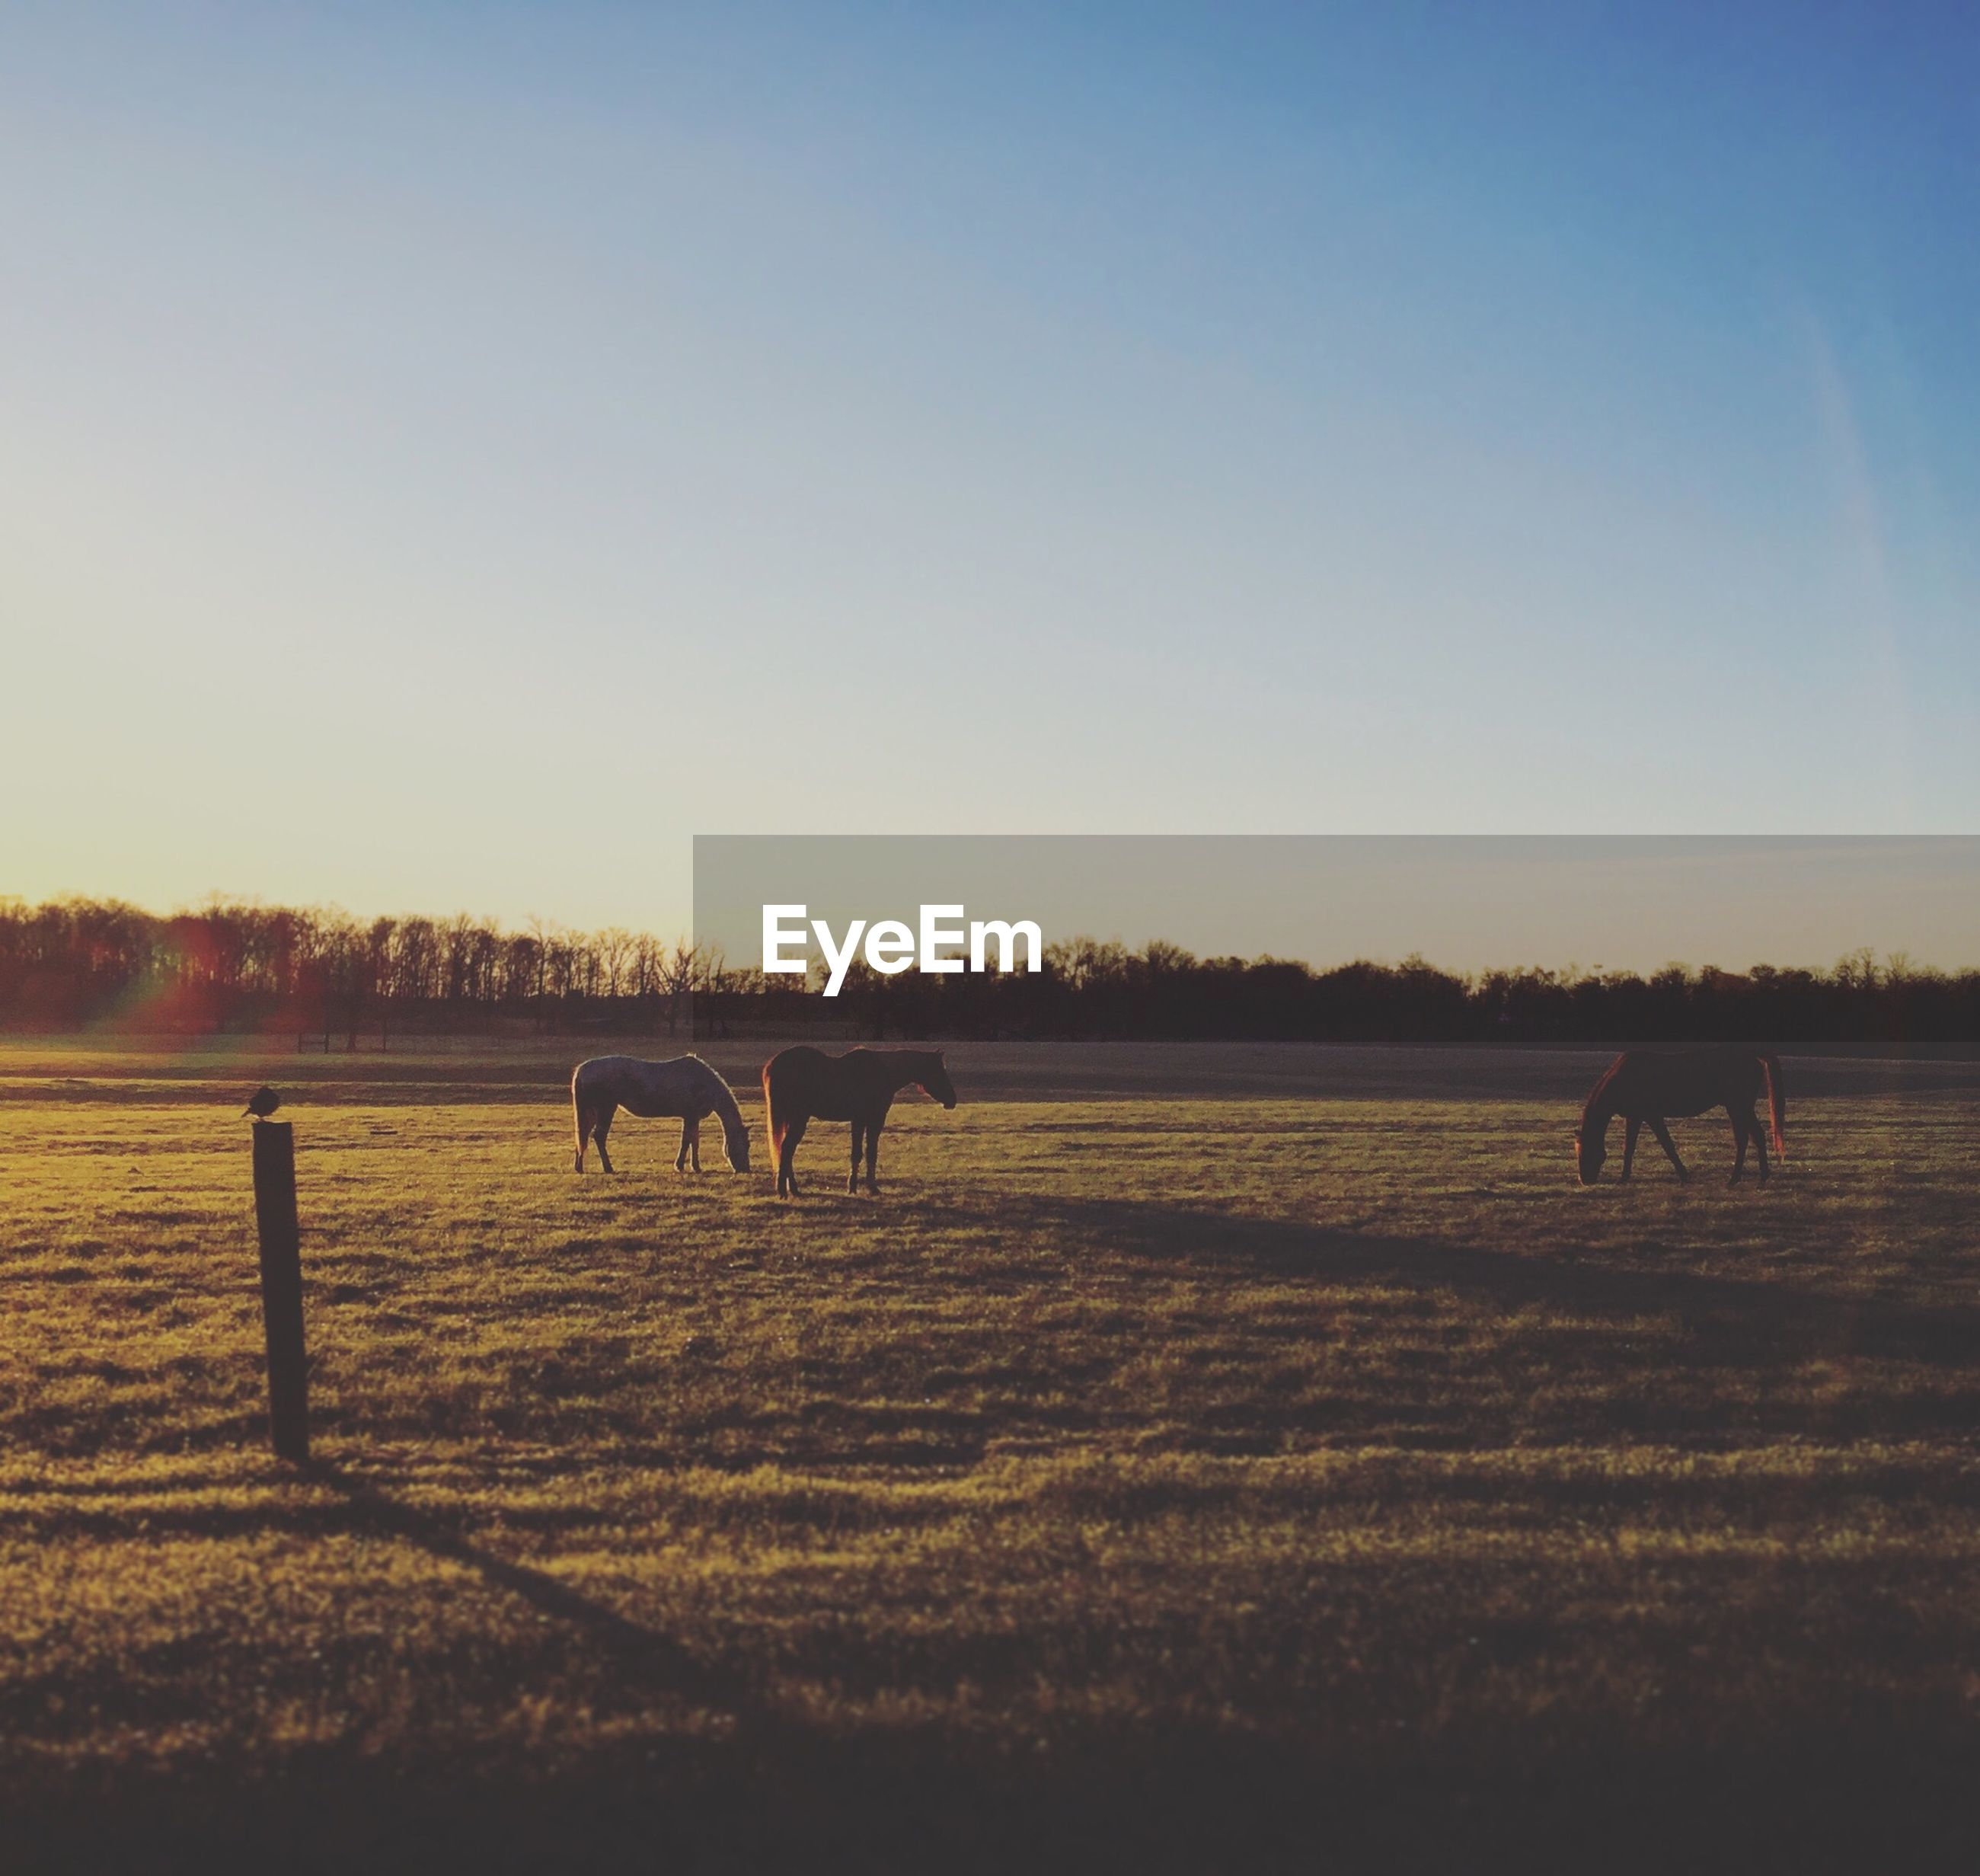 Horses grazing on grassy field against clear sky during sunset